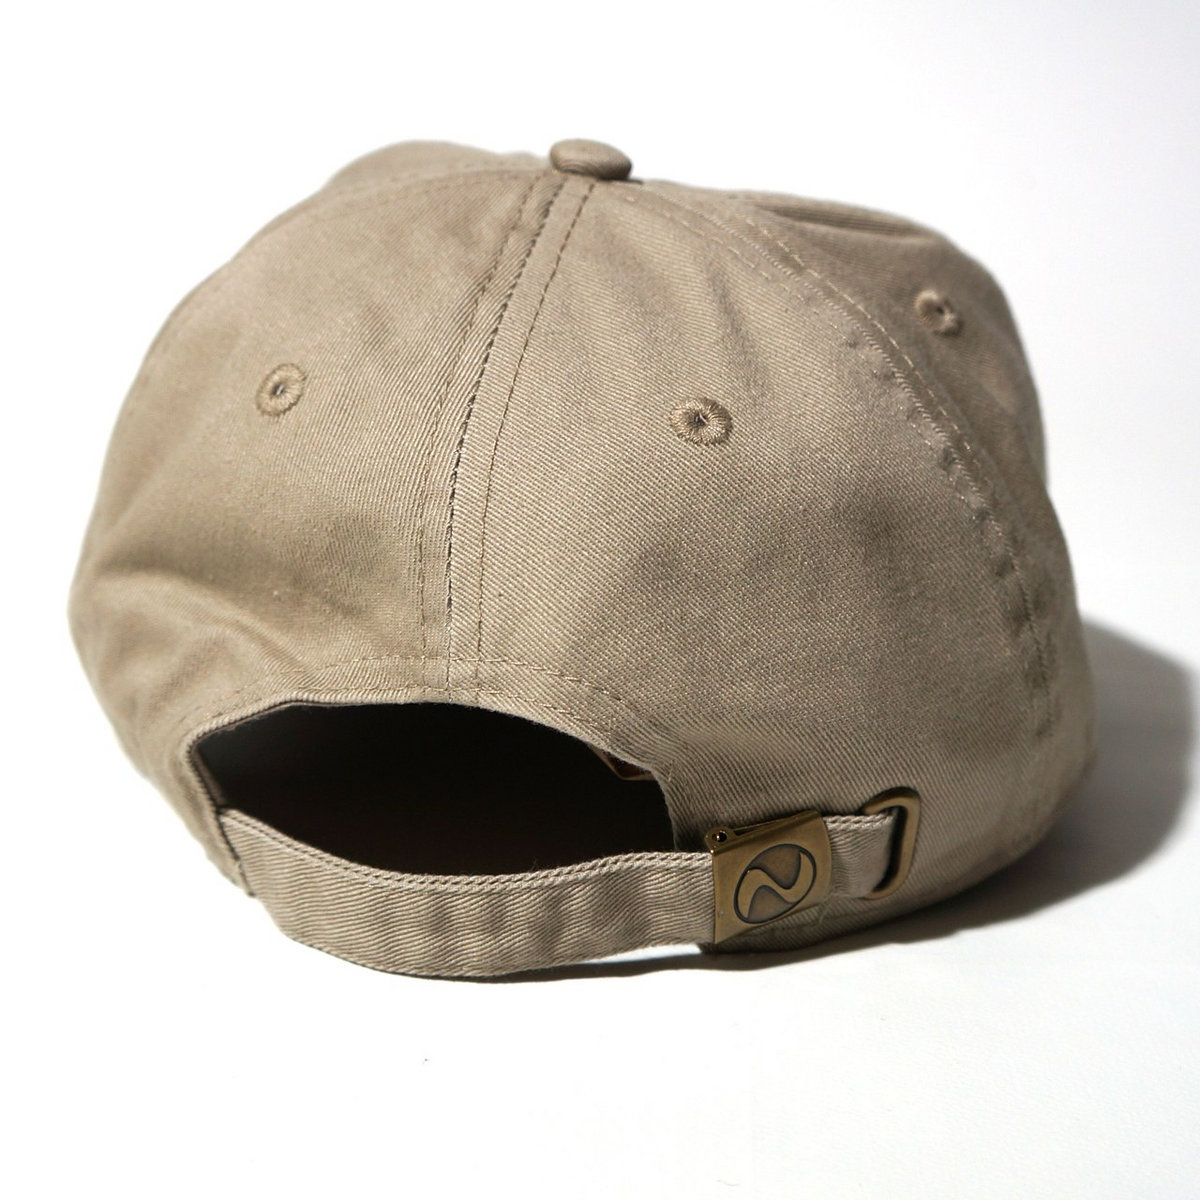 735c3ef2b48 ... SETE STAR SEPT Cotton Cap (Newhattan 1404)-Khaki photo ...